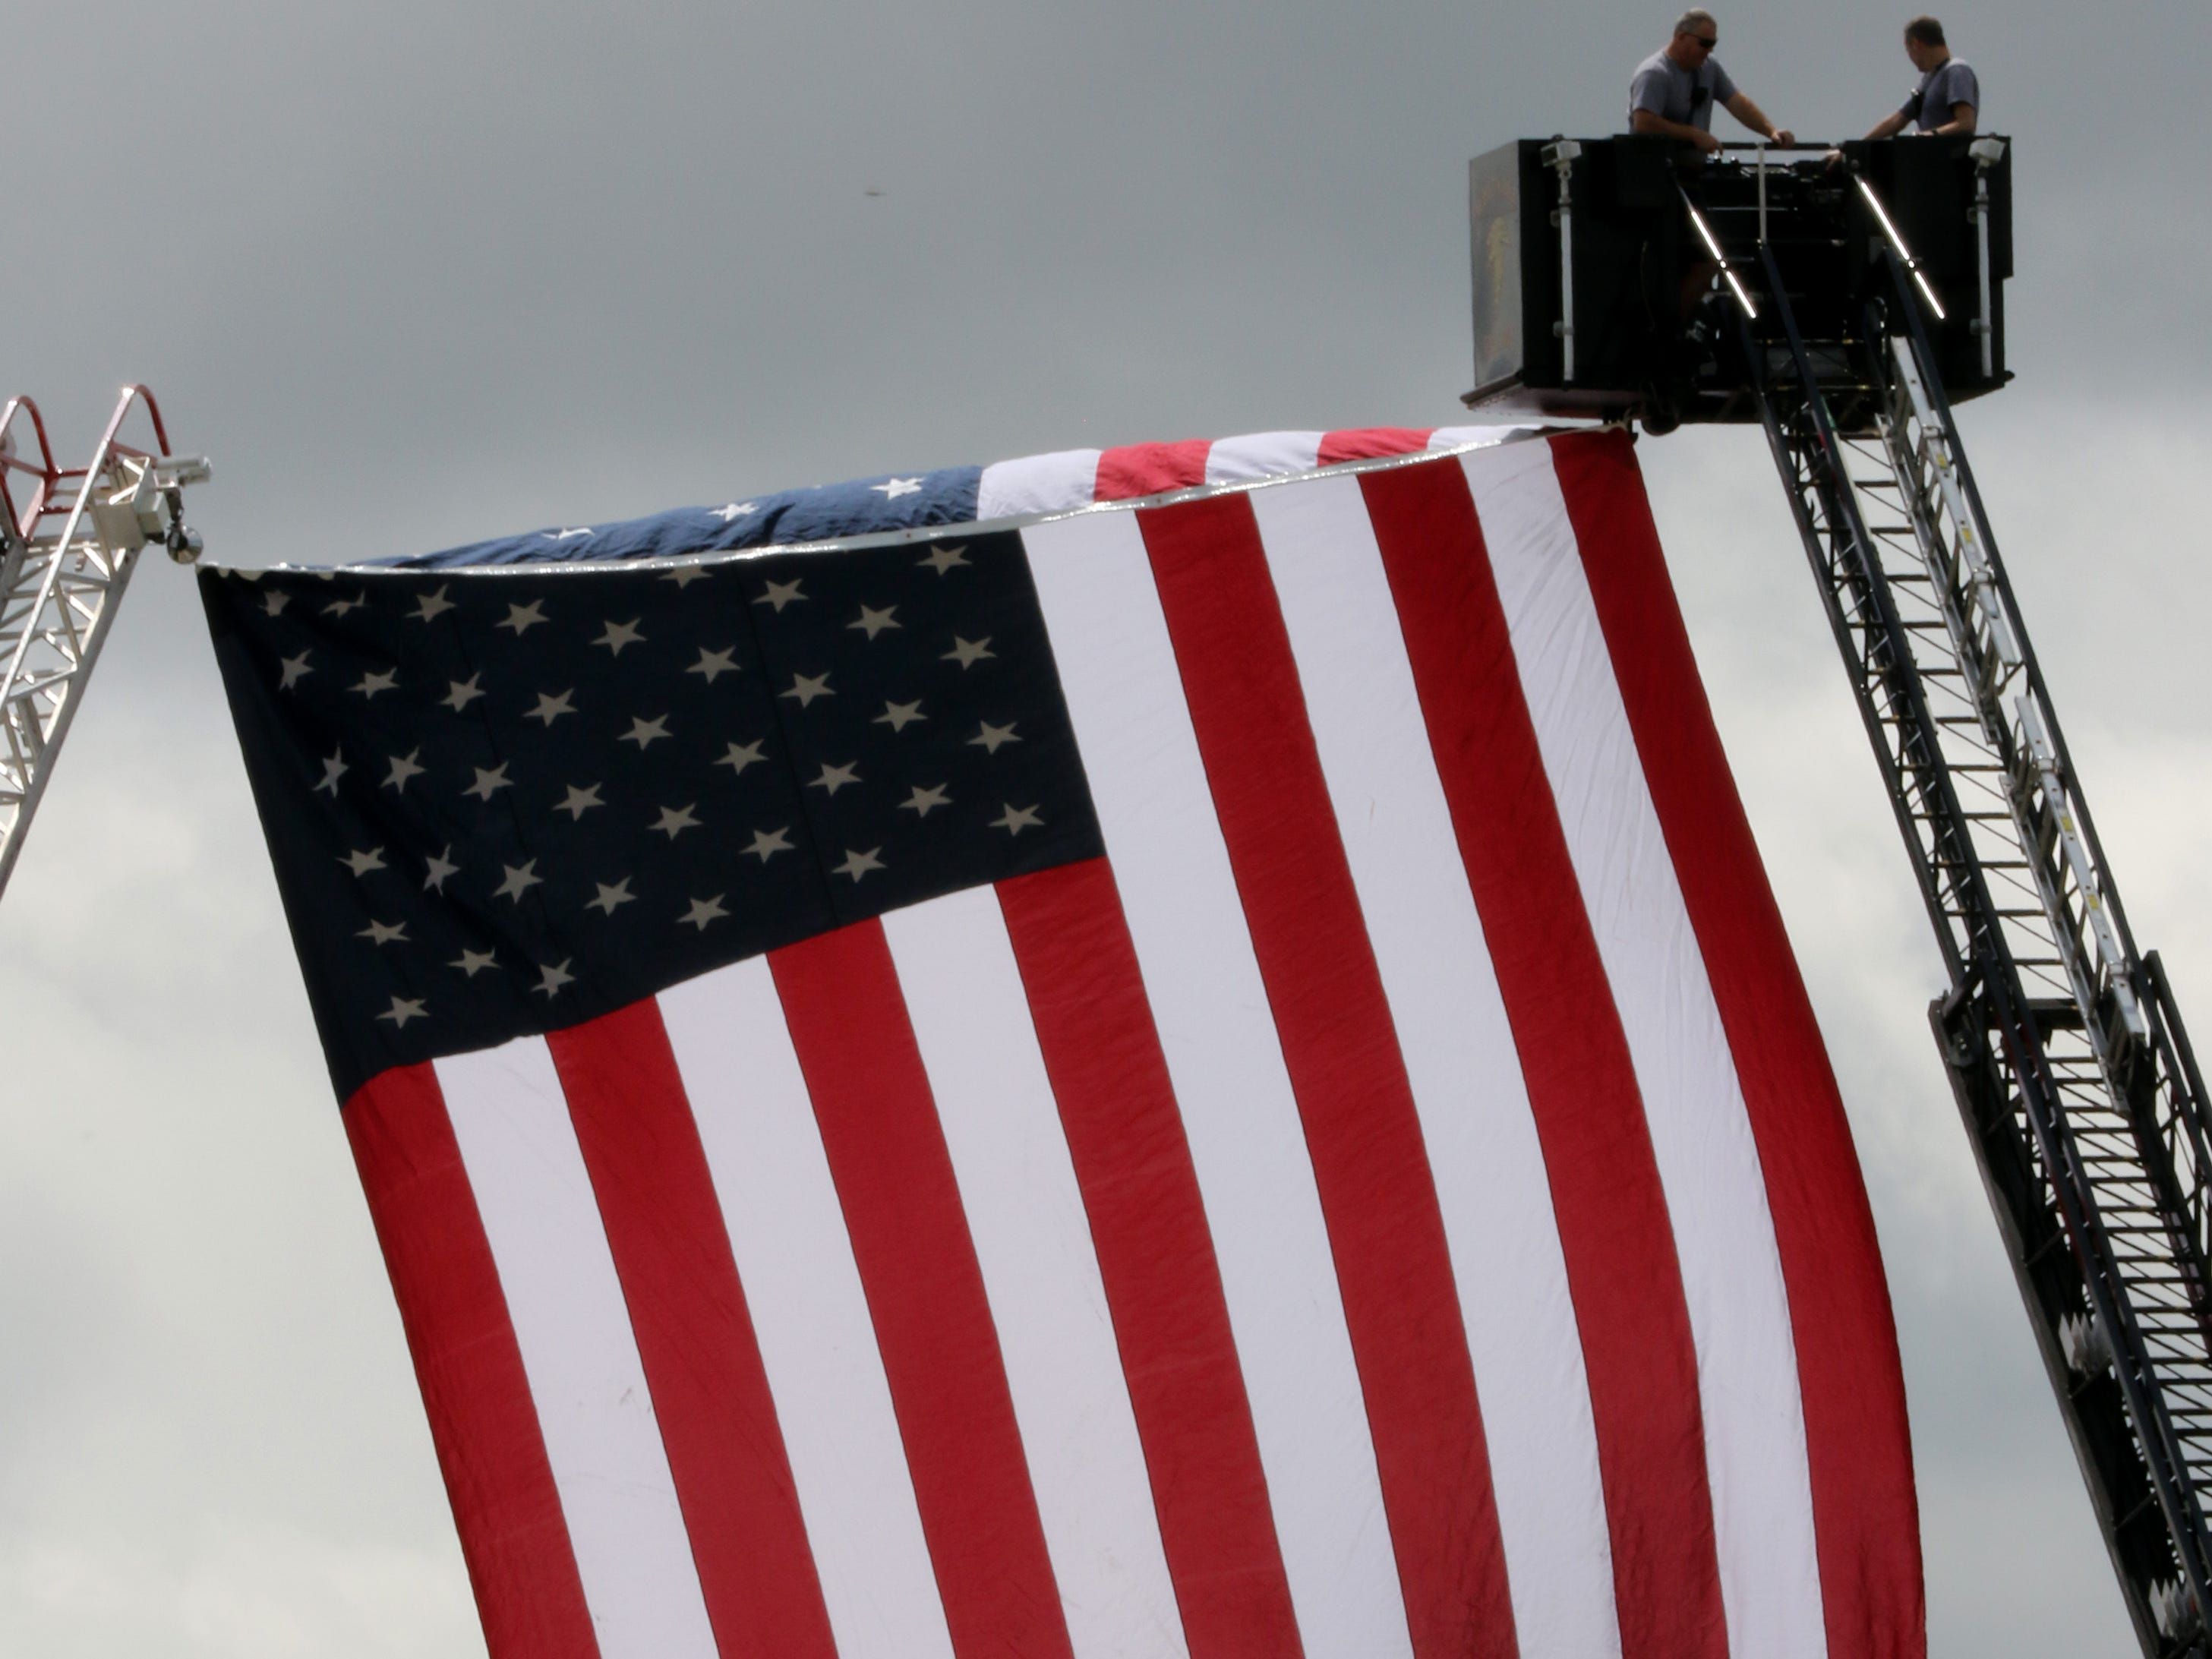 An American flag hangs between two fire ladders over 60th Street on Wednesday for a charity ride benefiting the Wisconsin Veterans Network from House of Harley-Davidson though southern Milwaukee County communities and ending at Veterans Park on the Milwaukee lakefront.